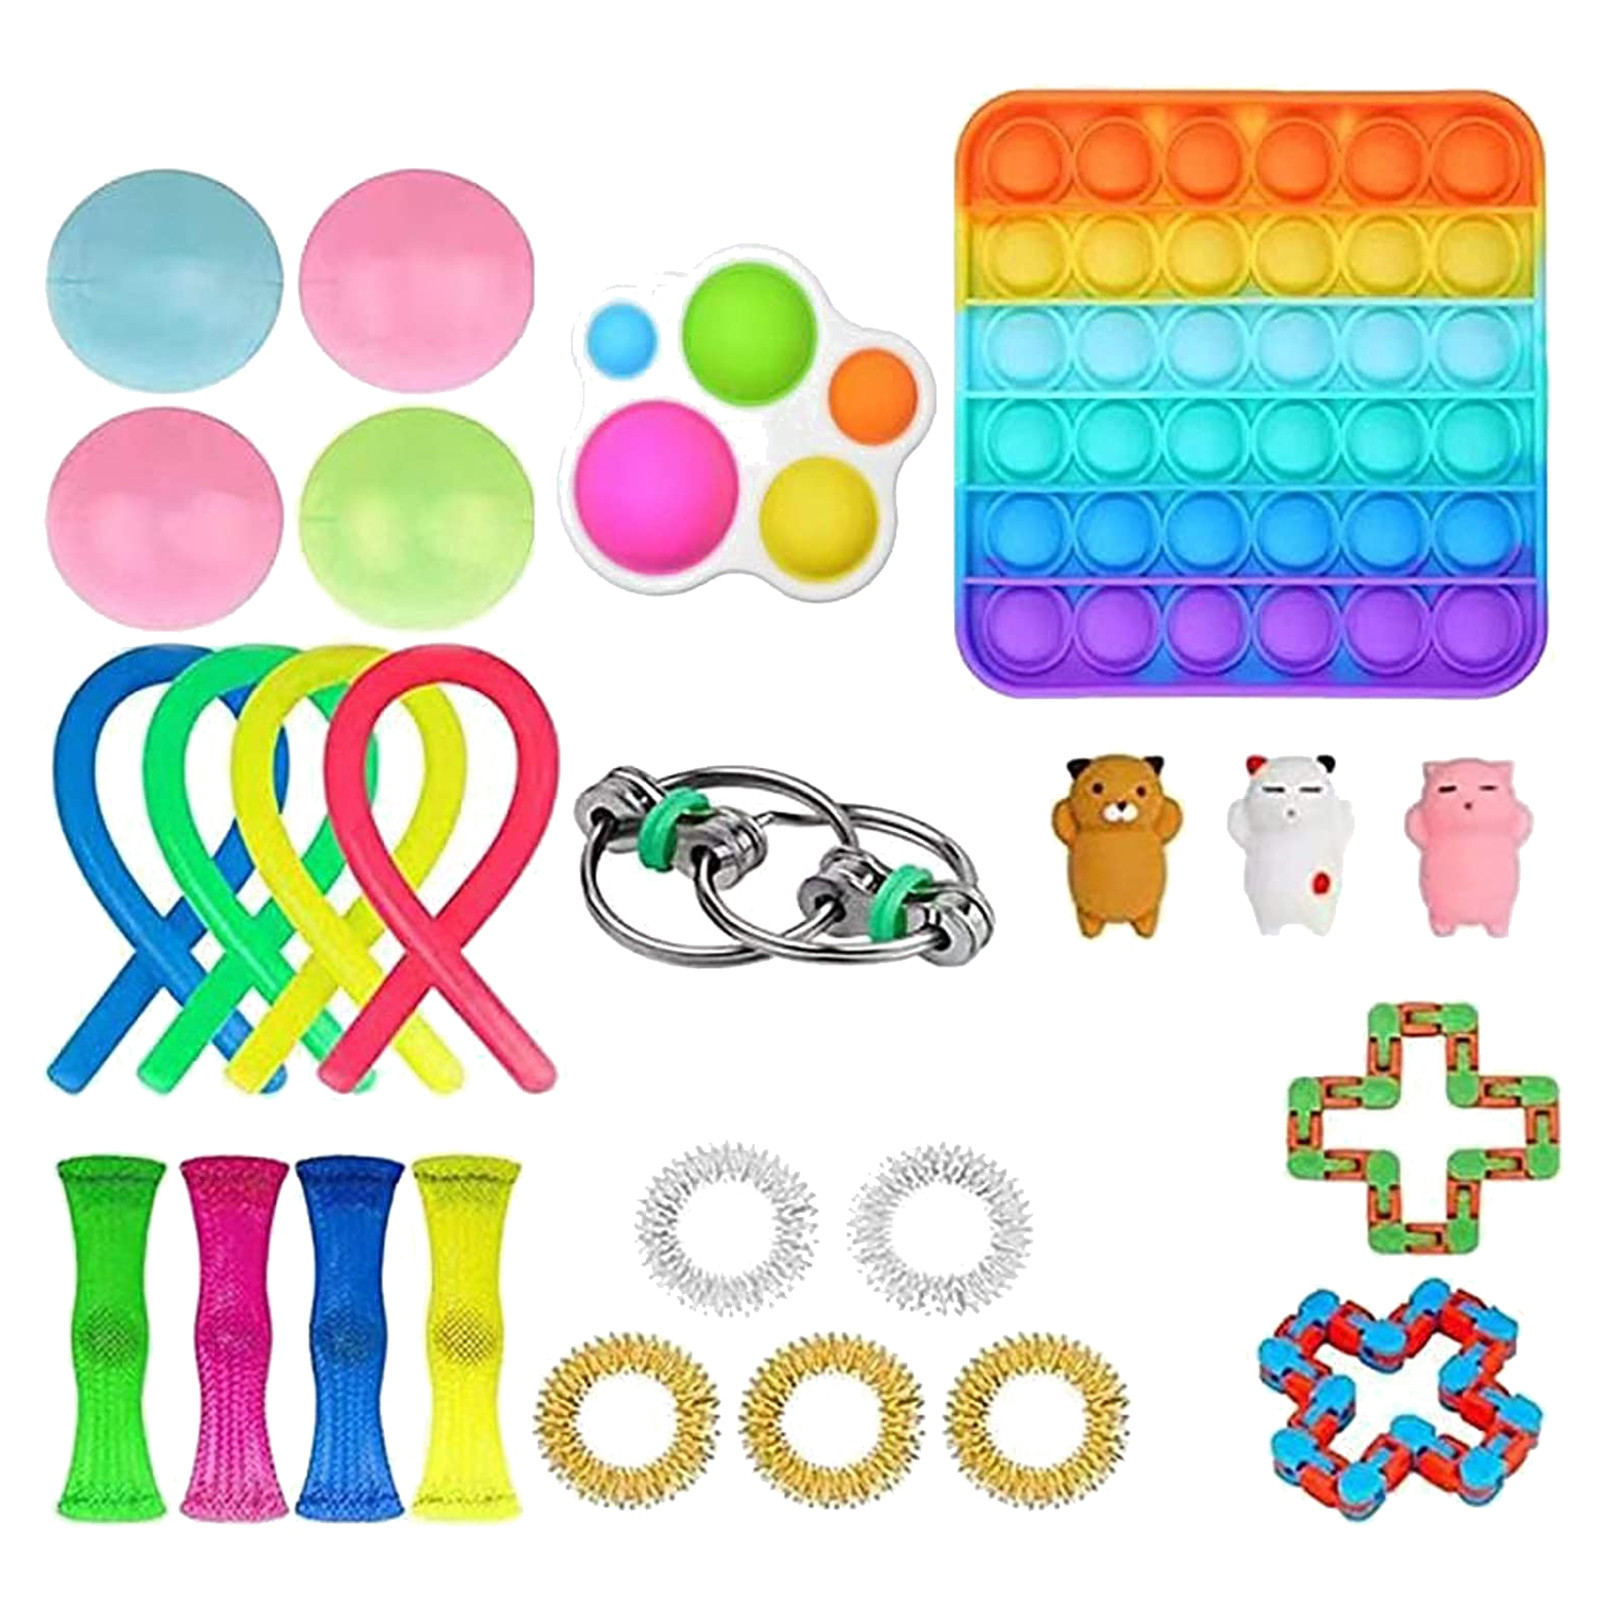 Toy-Set Fidget-Toys Strings Antistress-Toy Marble Sensory Girl Adults Children Gifts